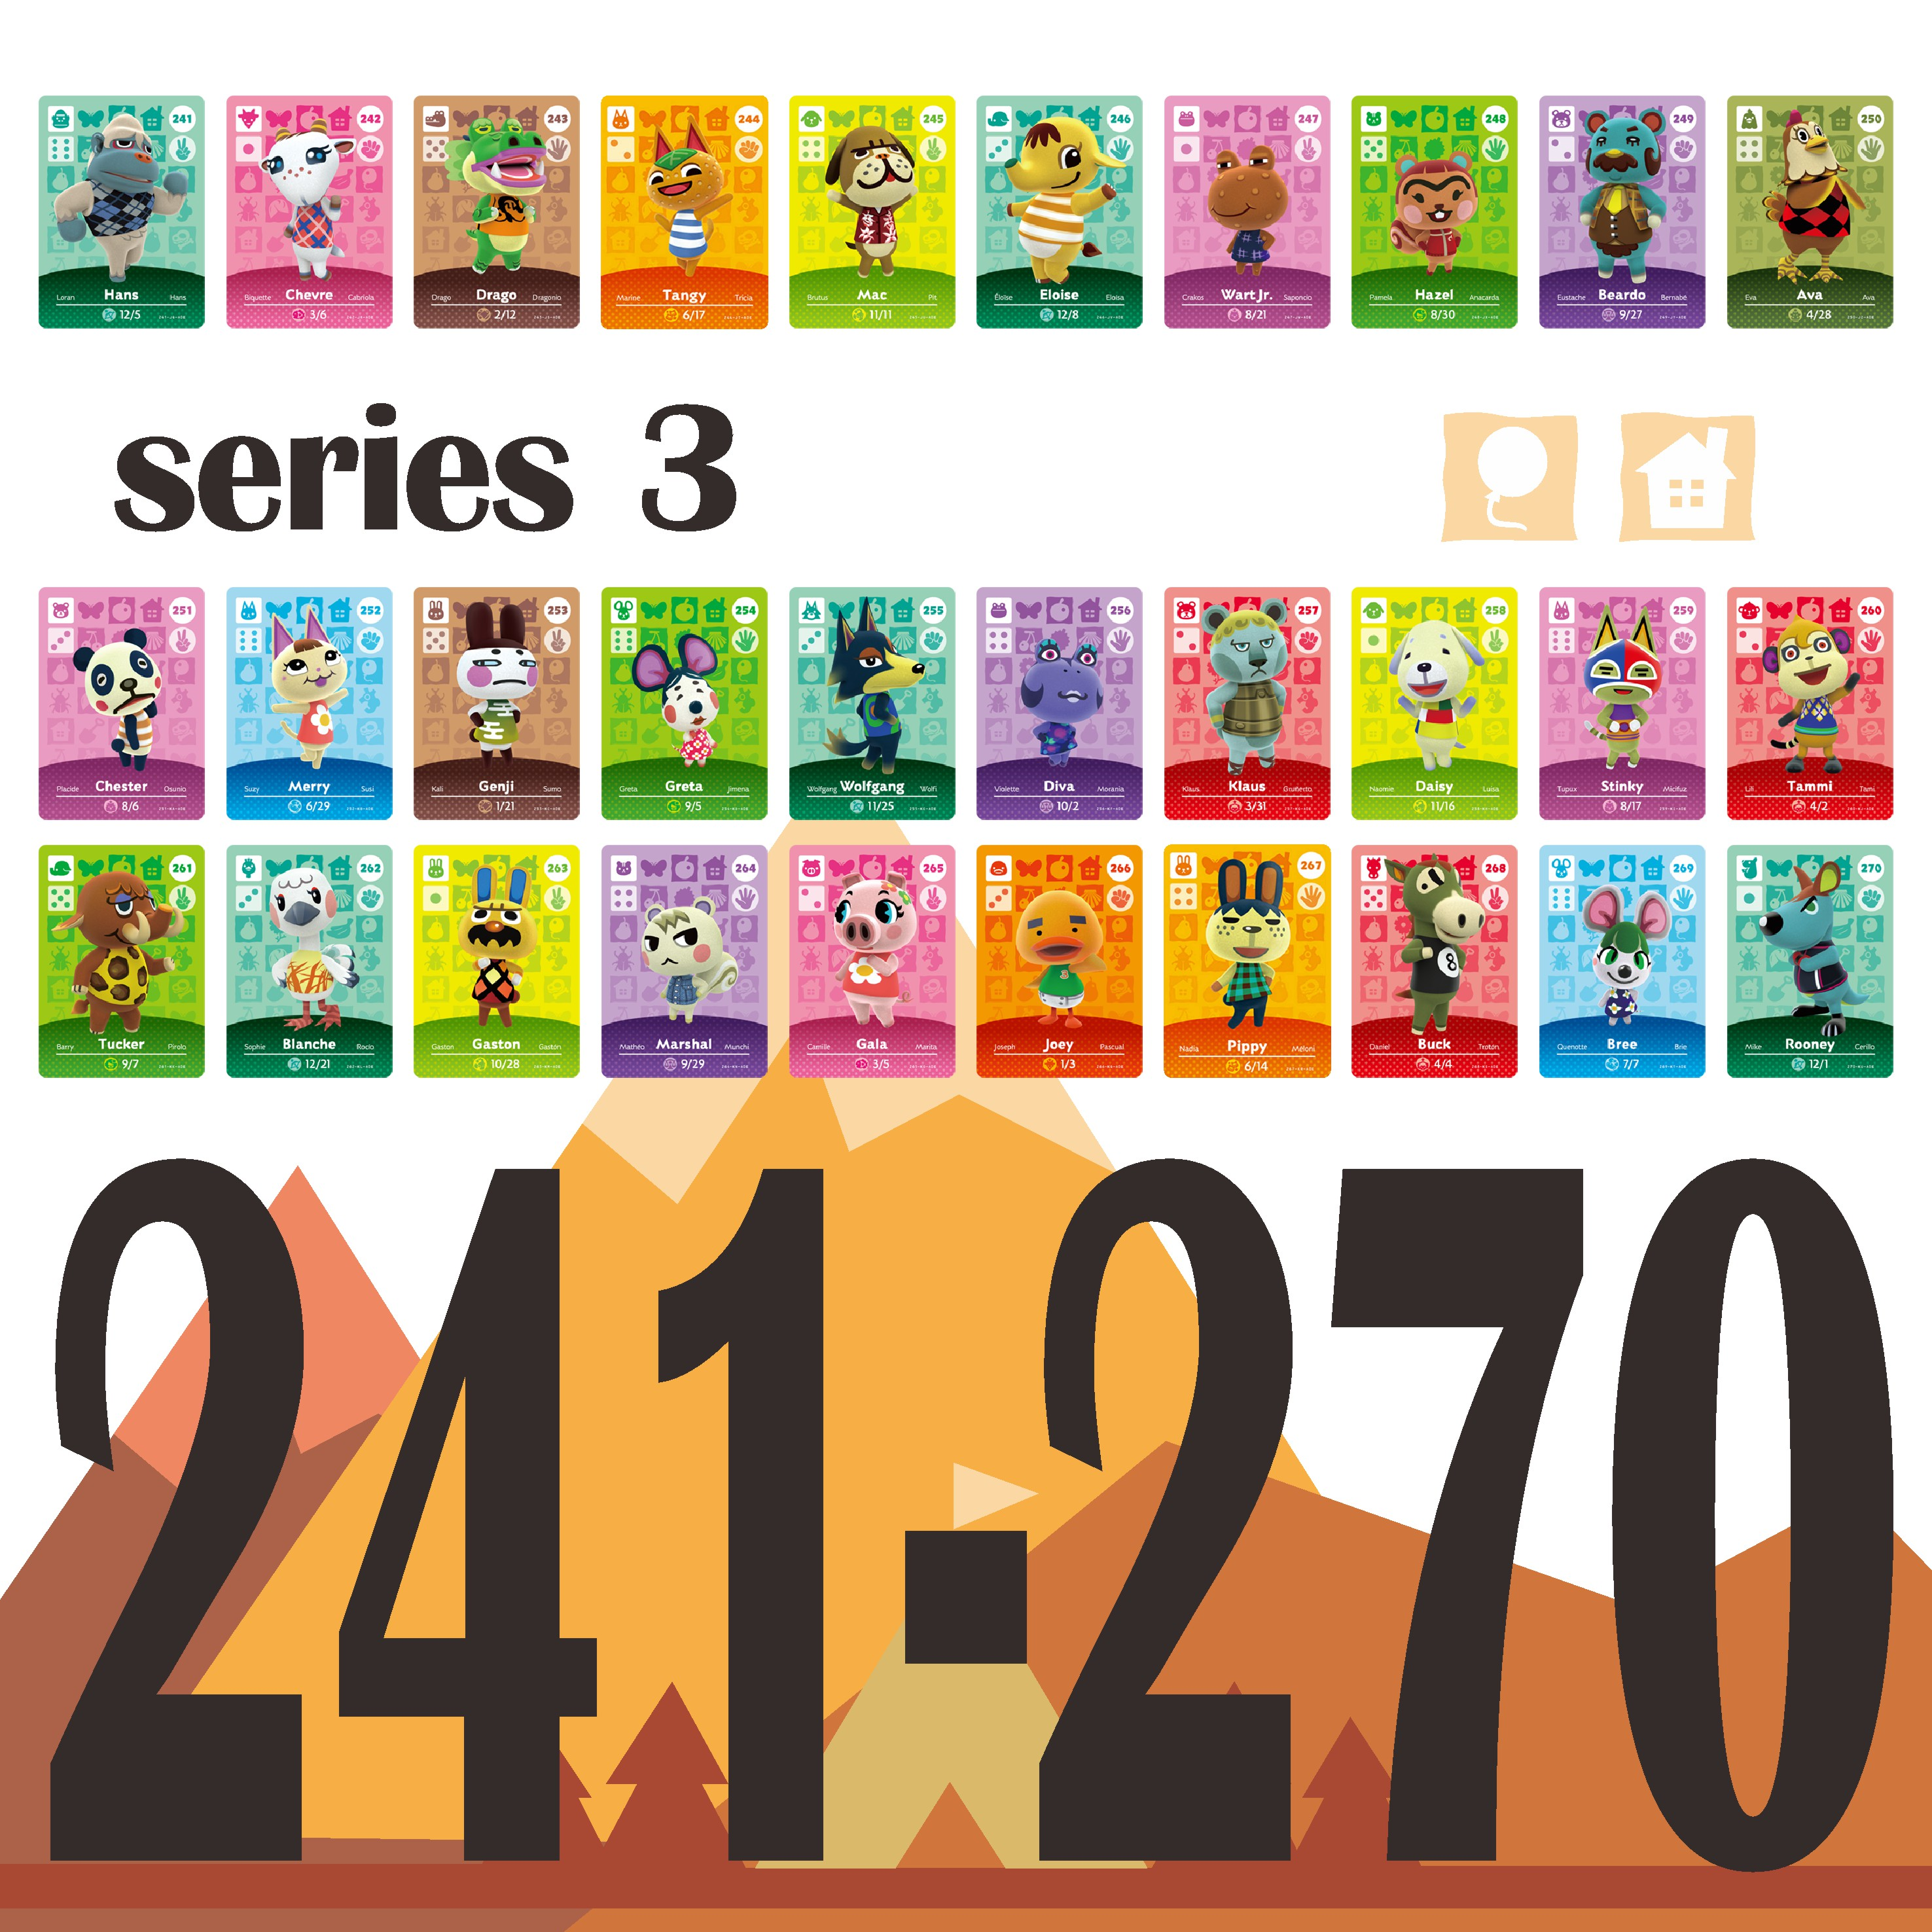 241-270 Animal Crossing Amiibo Game Crooss Card Series Set Season 3 Animal Crossing Card Amiibo Card Work For Ns Games Ntag215